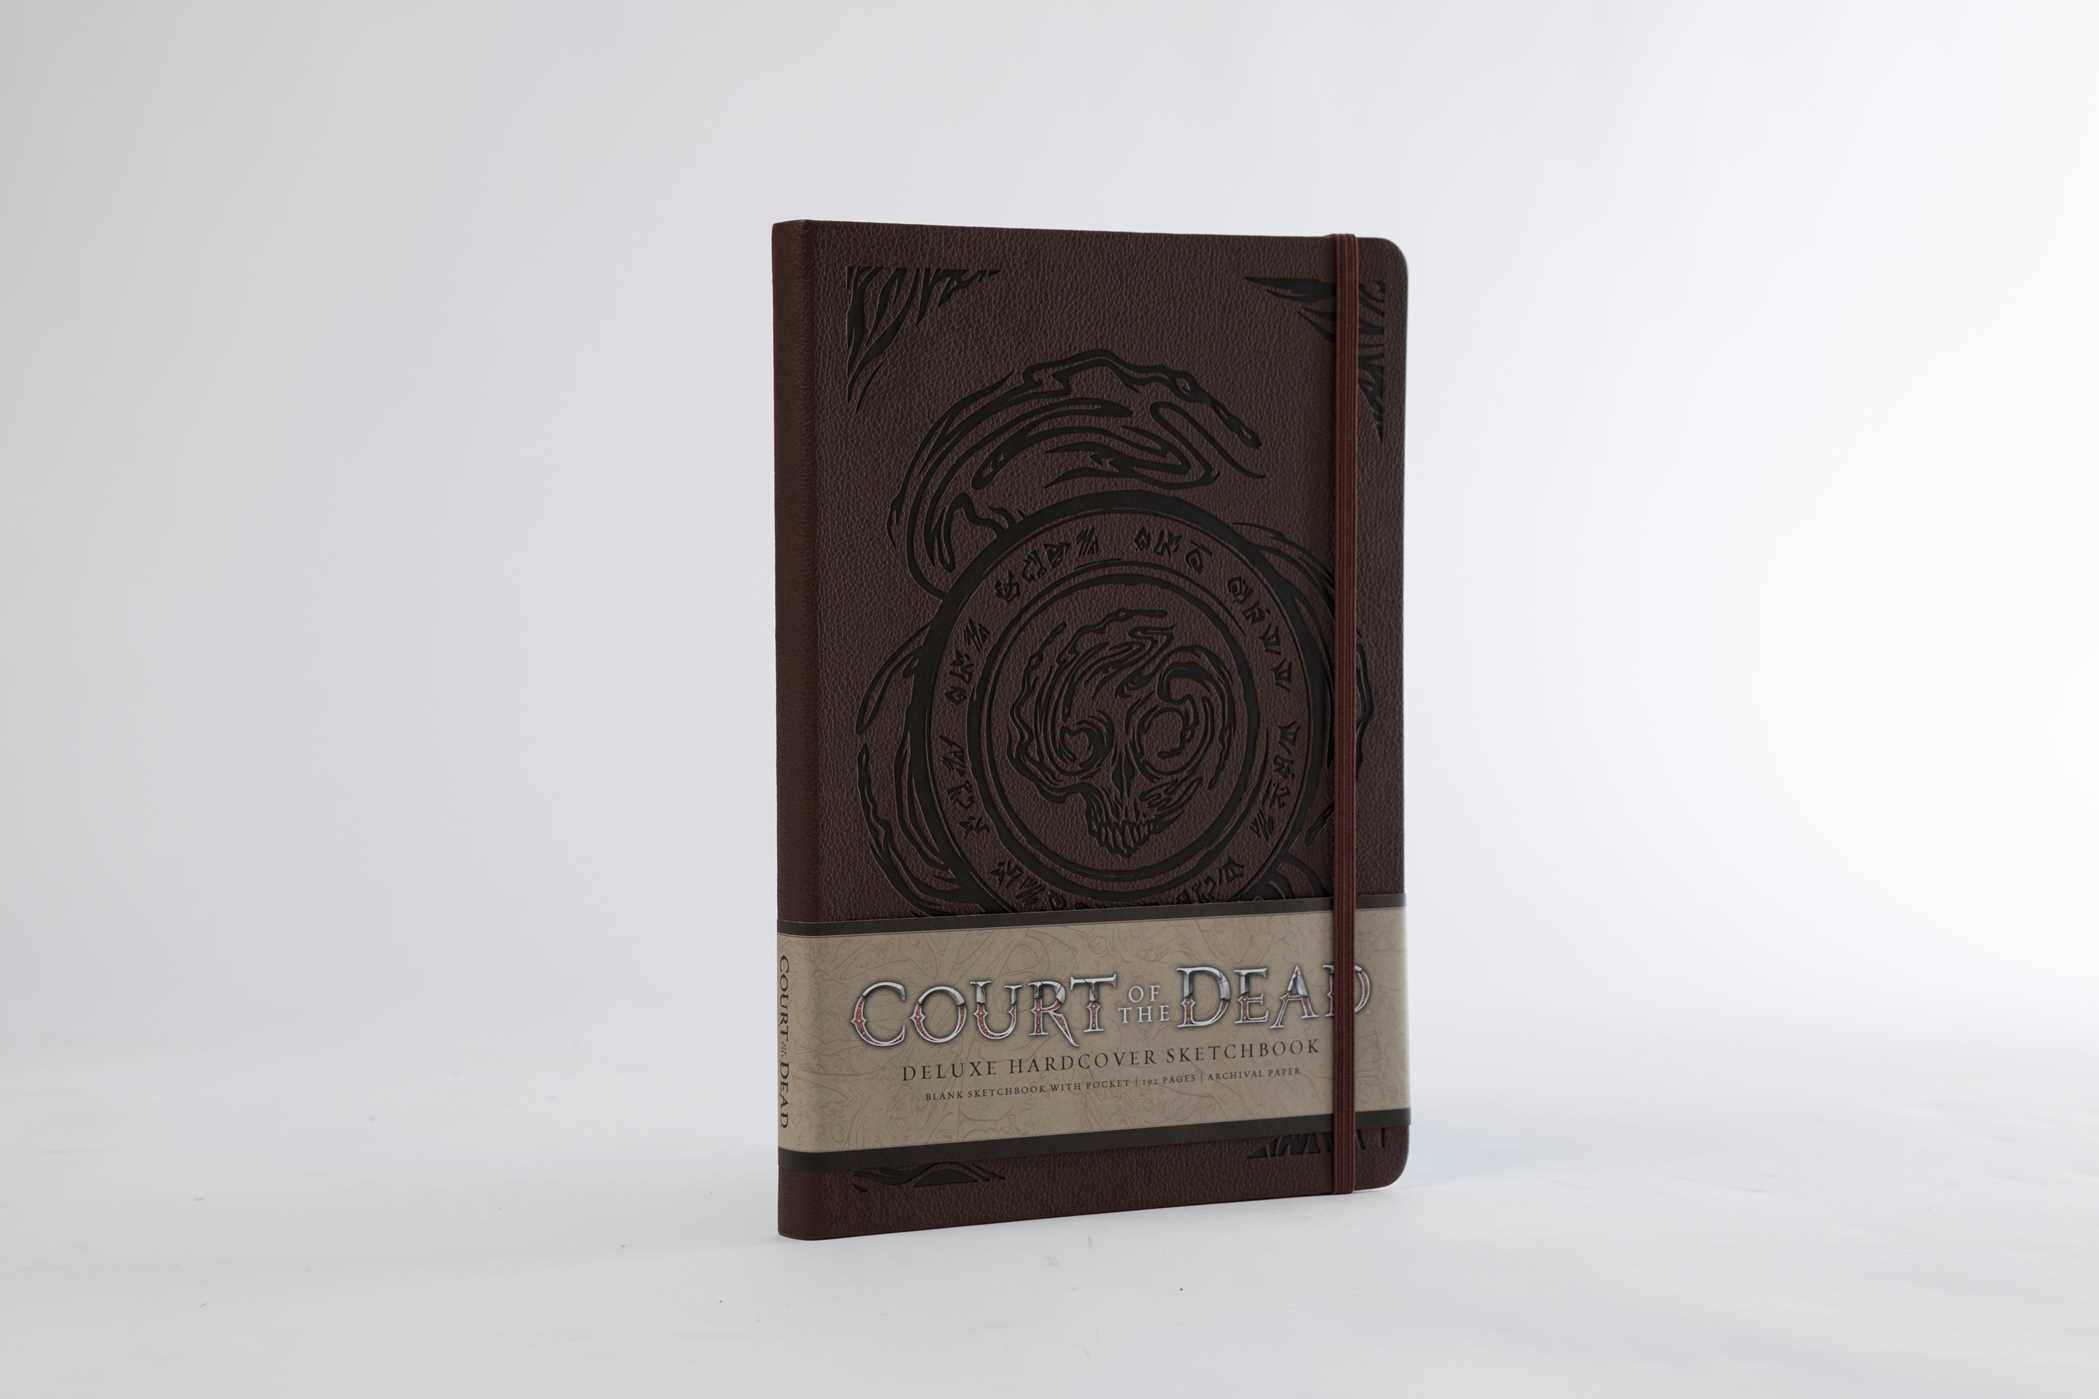 Court of the dead hardcover blank sketchbook 9781683831235.in05